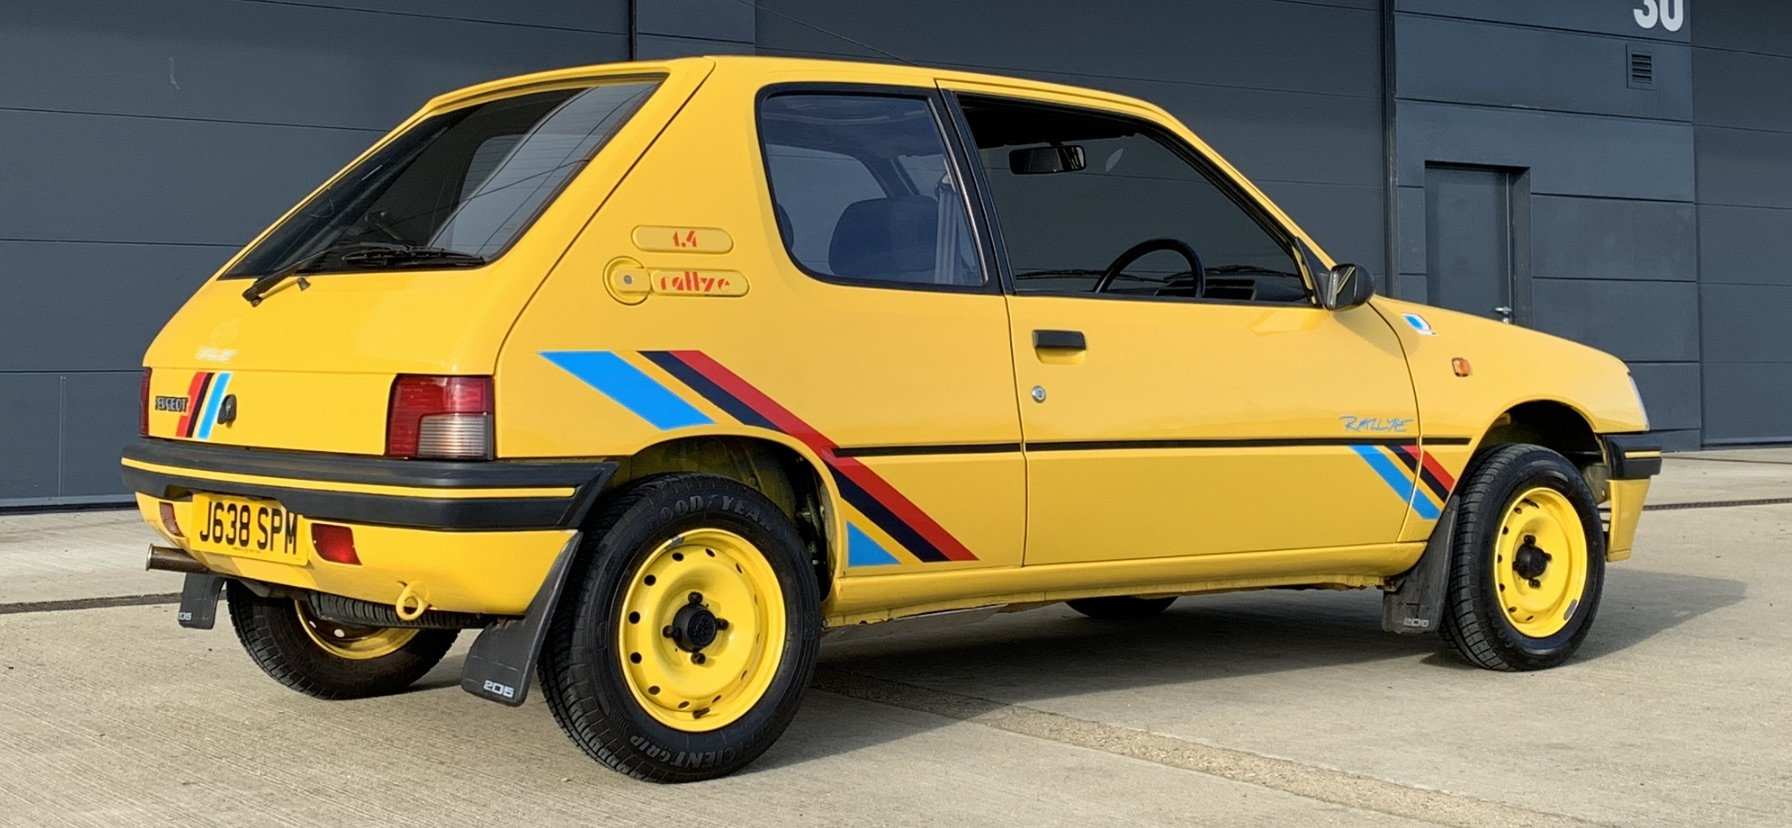 1992 Peugeot 205 Rallye For Sale (picture 3 of 12)